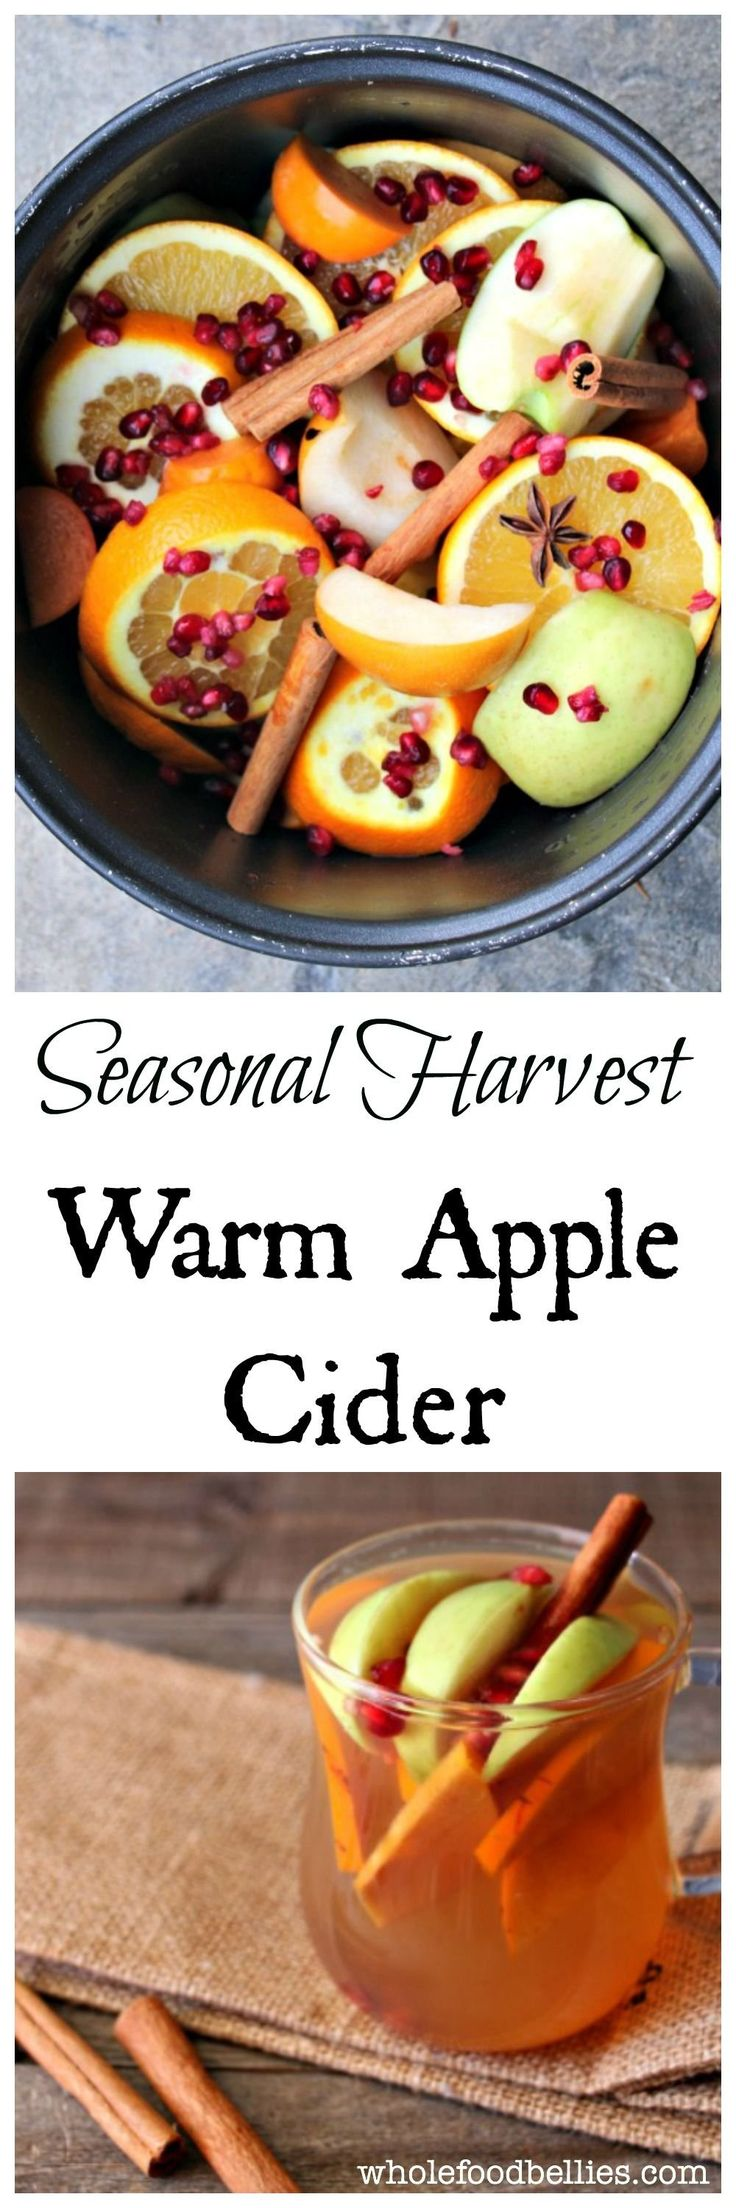 Pop all the beautiful, fresh fruit from the farmers market into the crockpot, and warm up with this delicious warm cider.